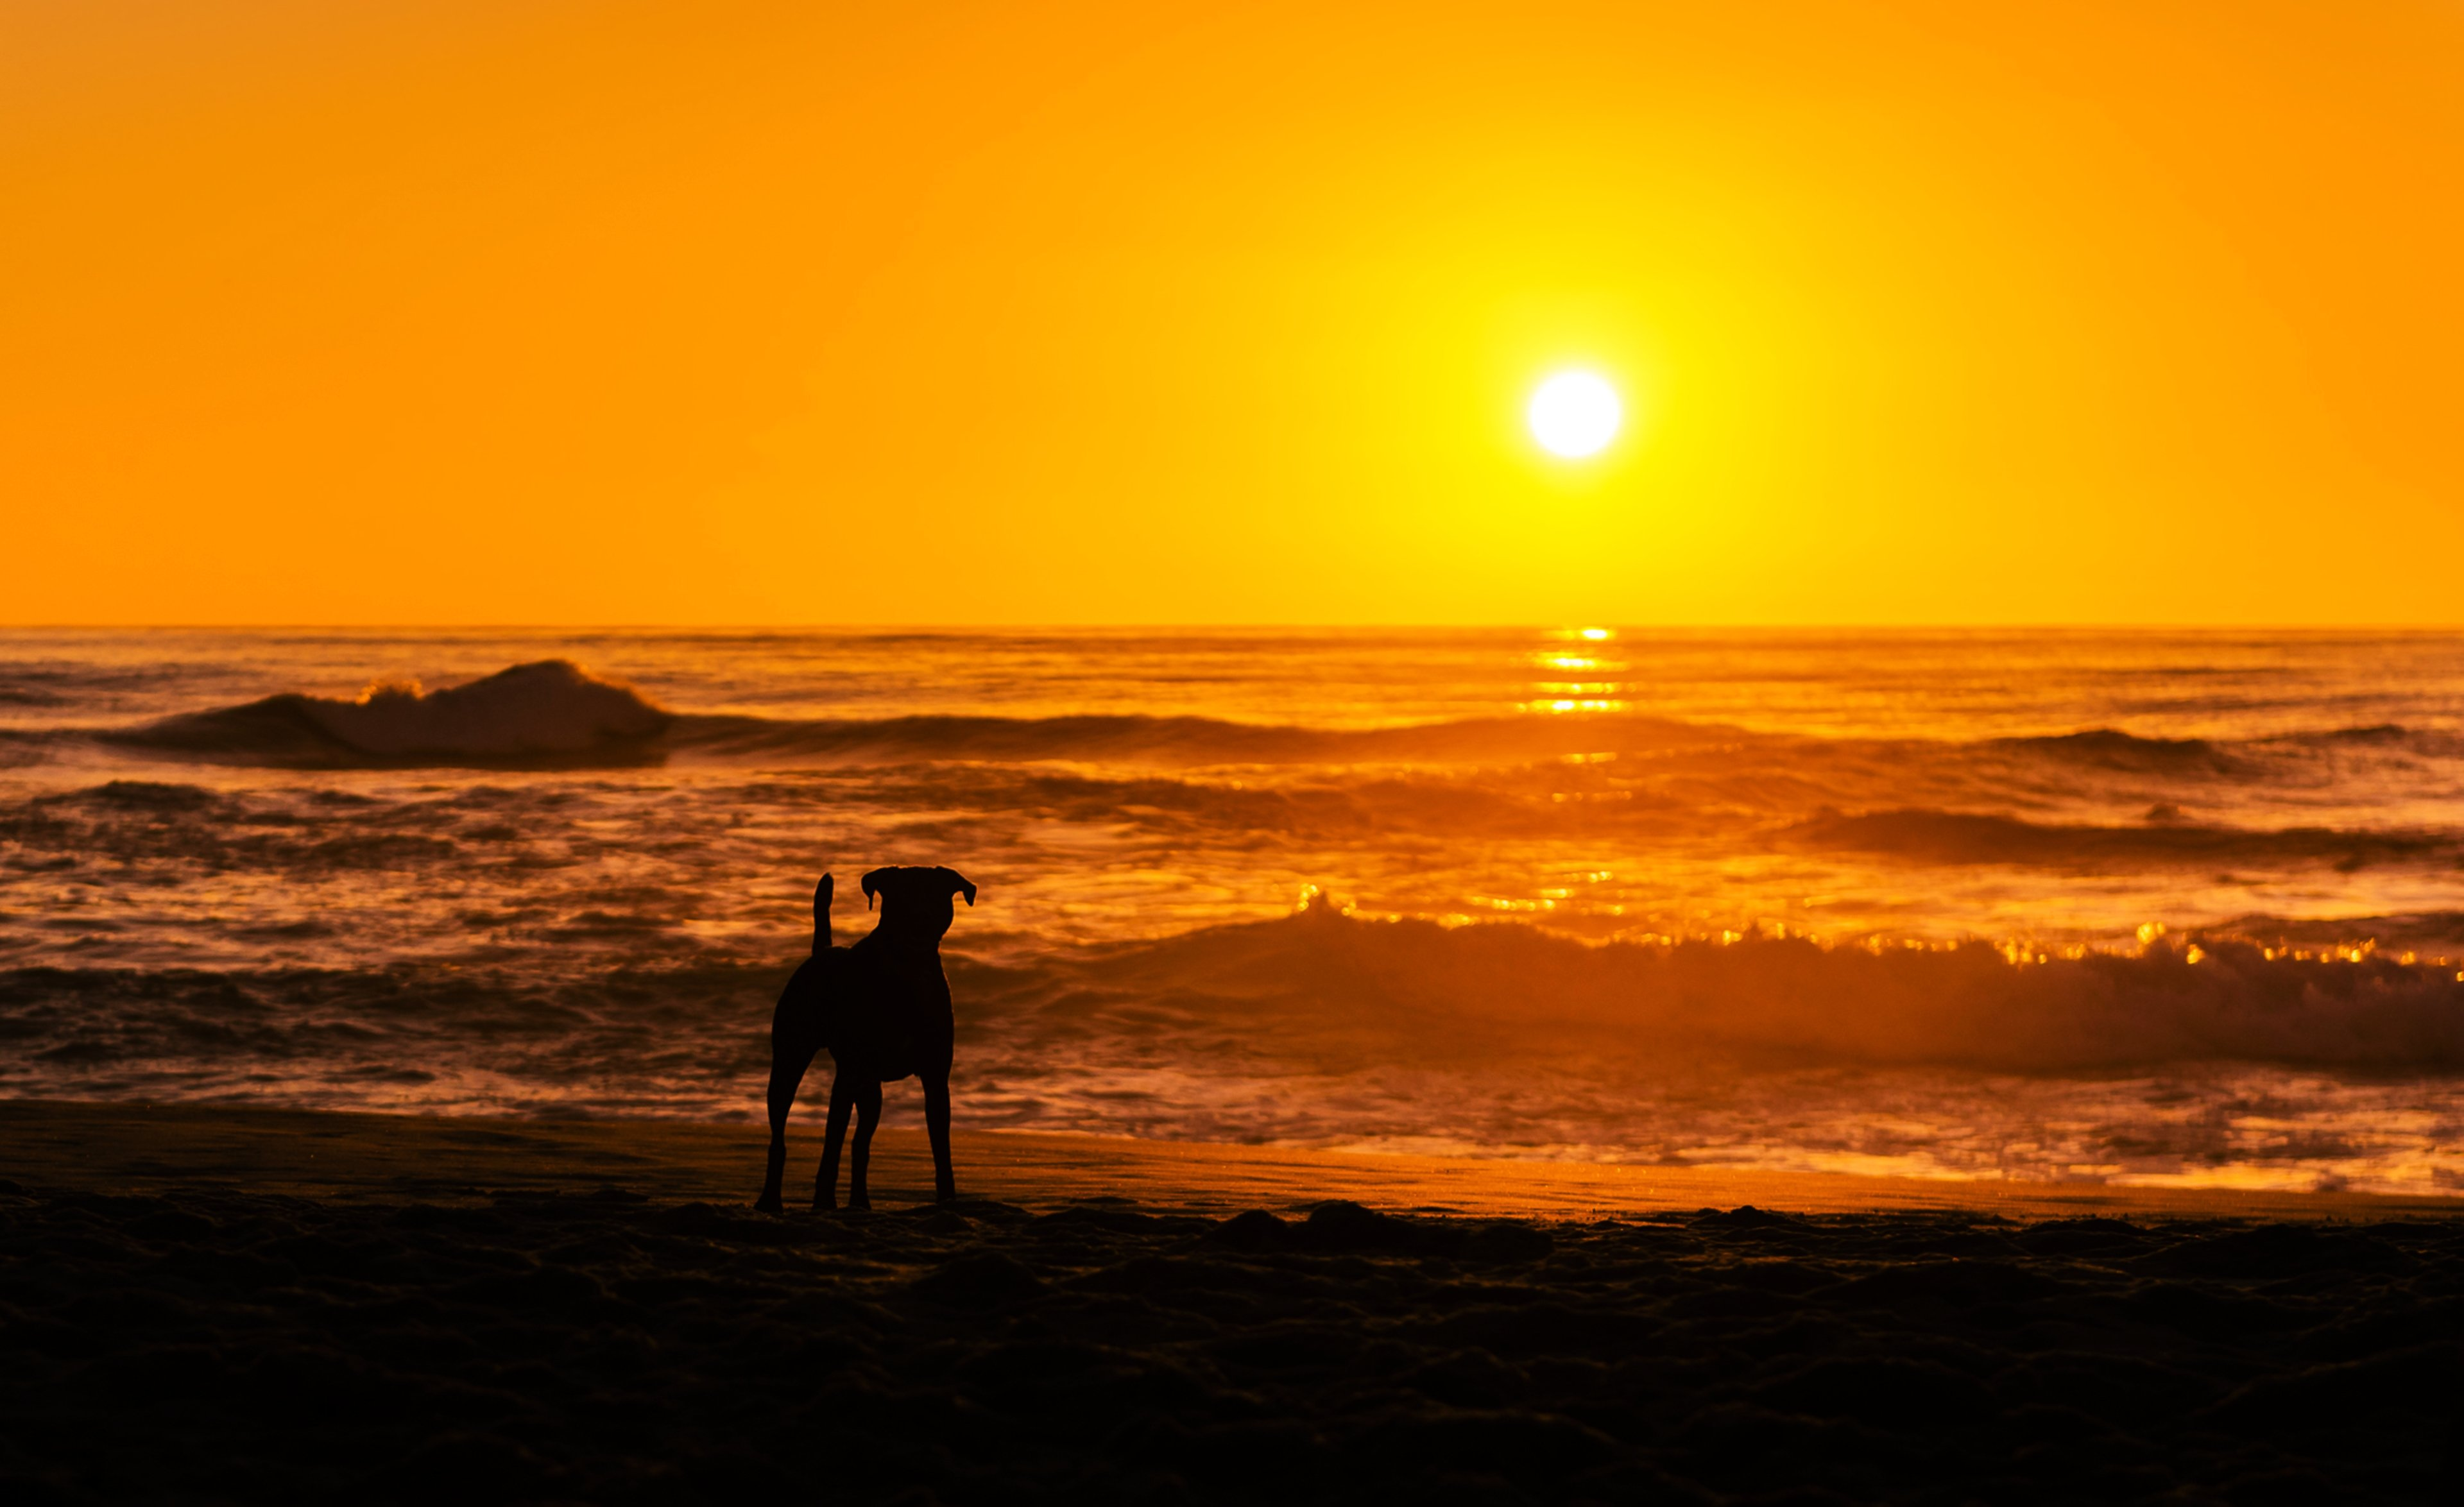 beaches sunset dog sea ocean orange waves beauty nature landscapes